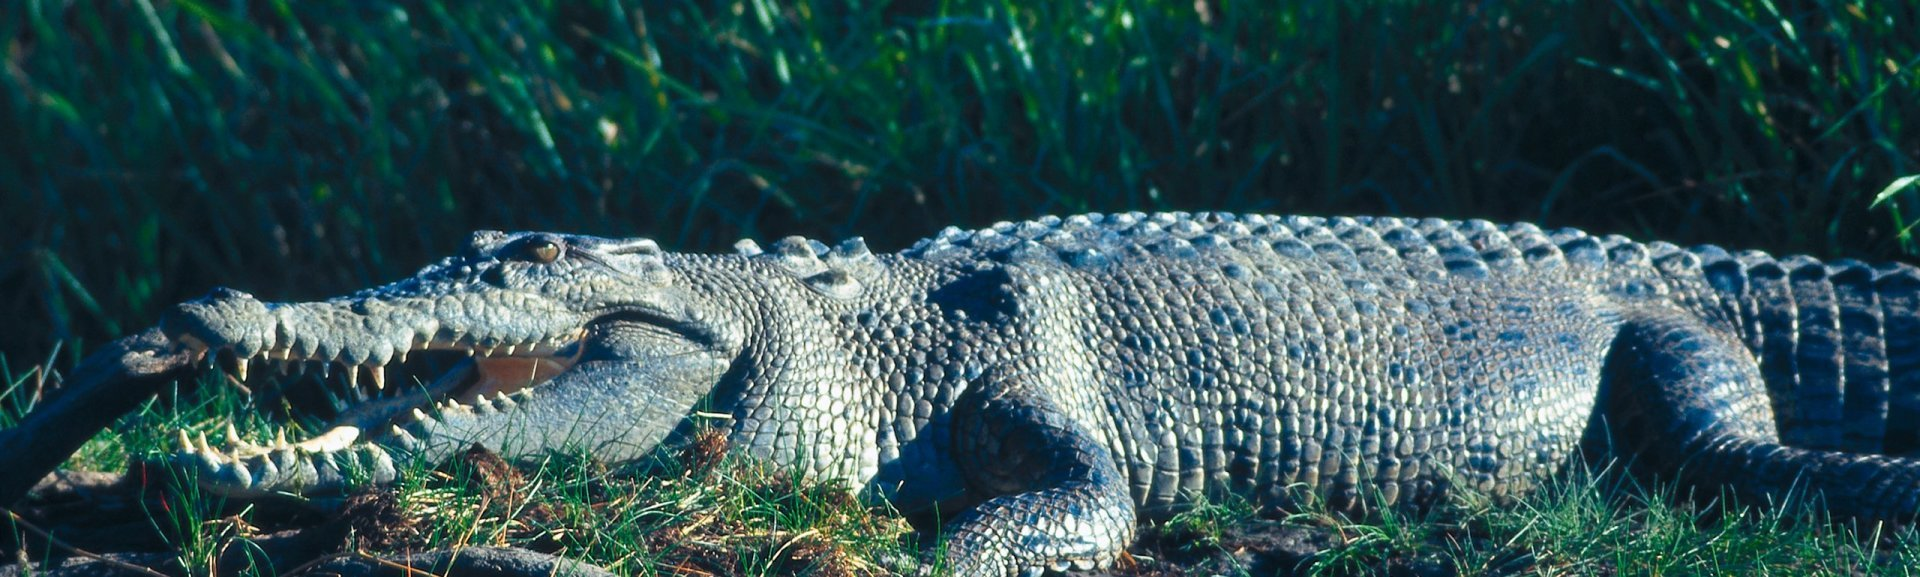 Saltwater crocodile on grass bank